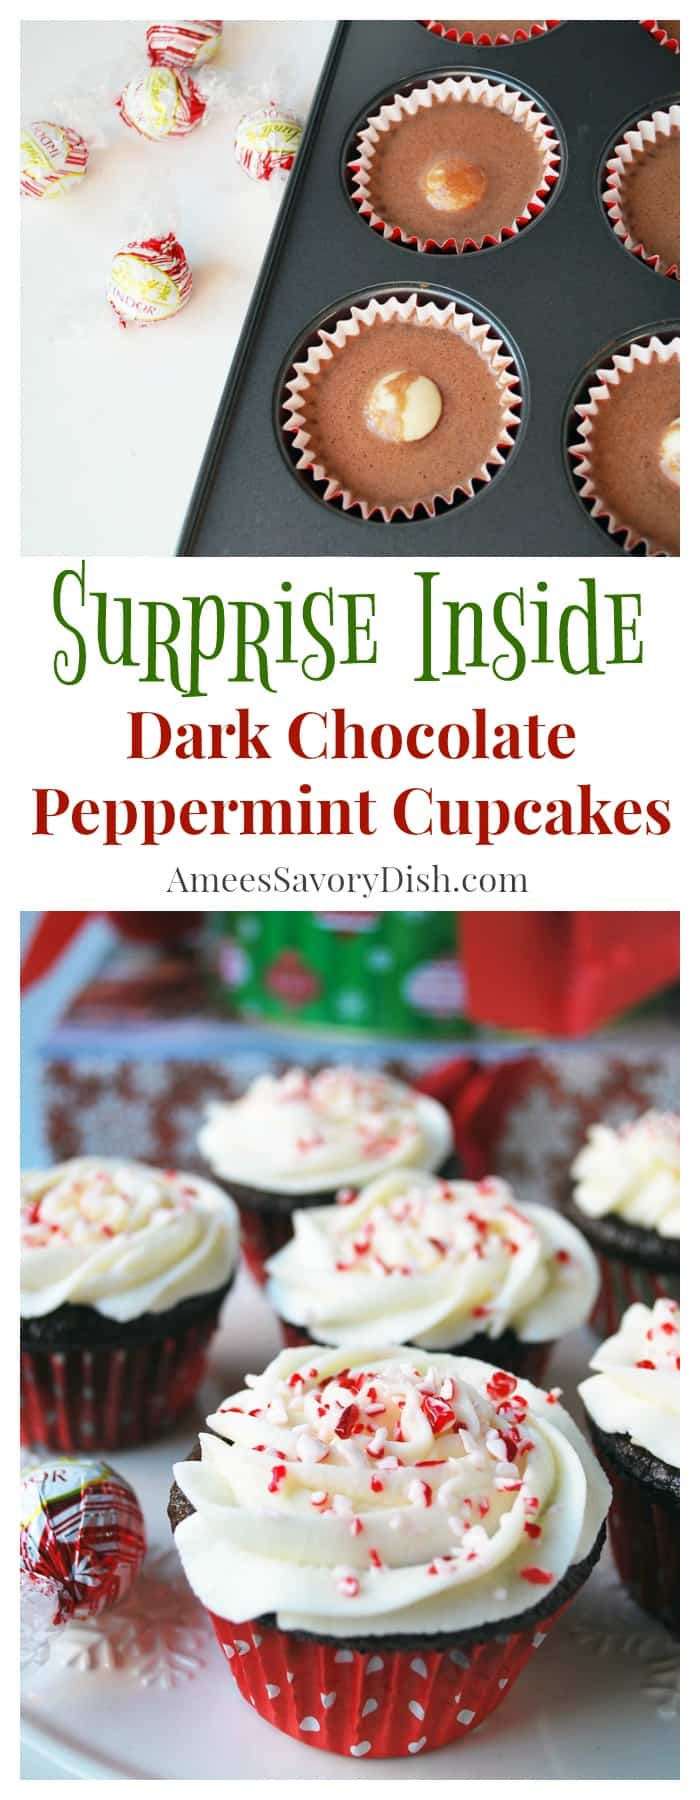 These moist Dark Chocolate Peppermint Cupcakes with peppermint buttercream frosting are the only chocolate cupcake recipe you need this holiday season!   via @Ameessavorydish